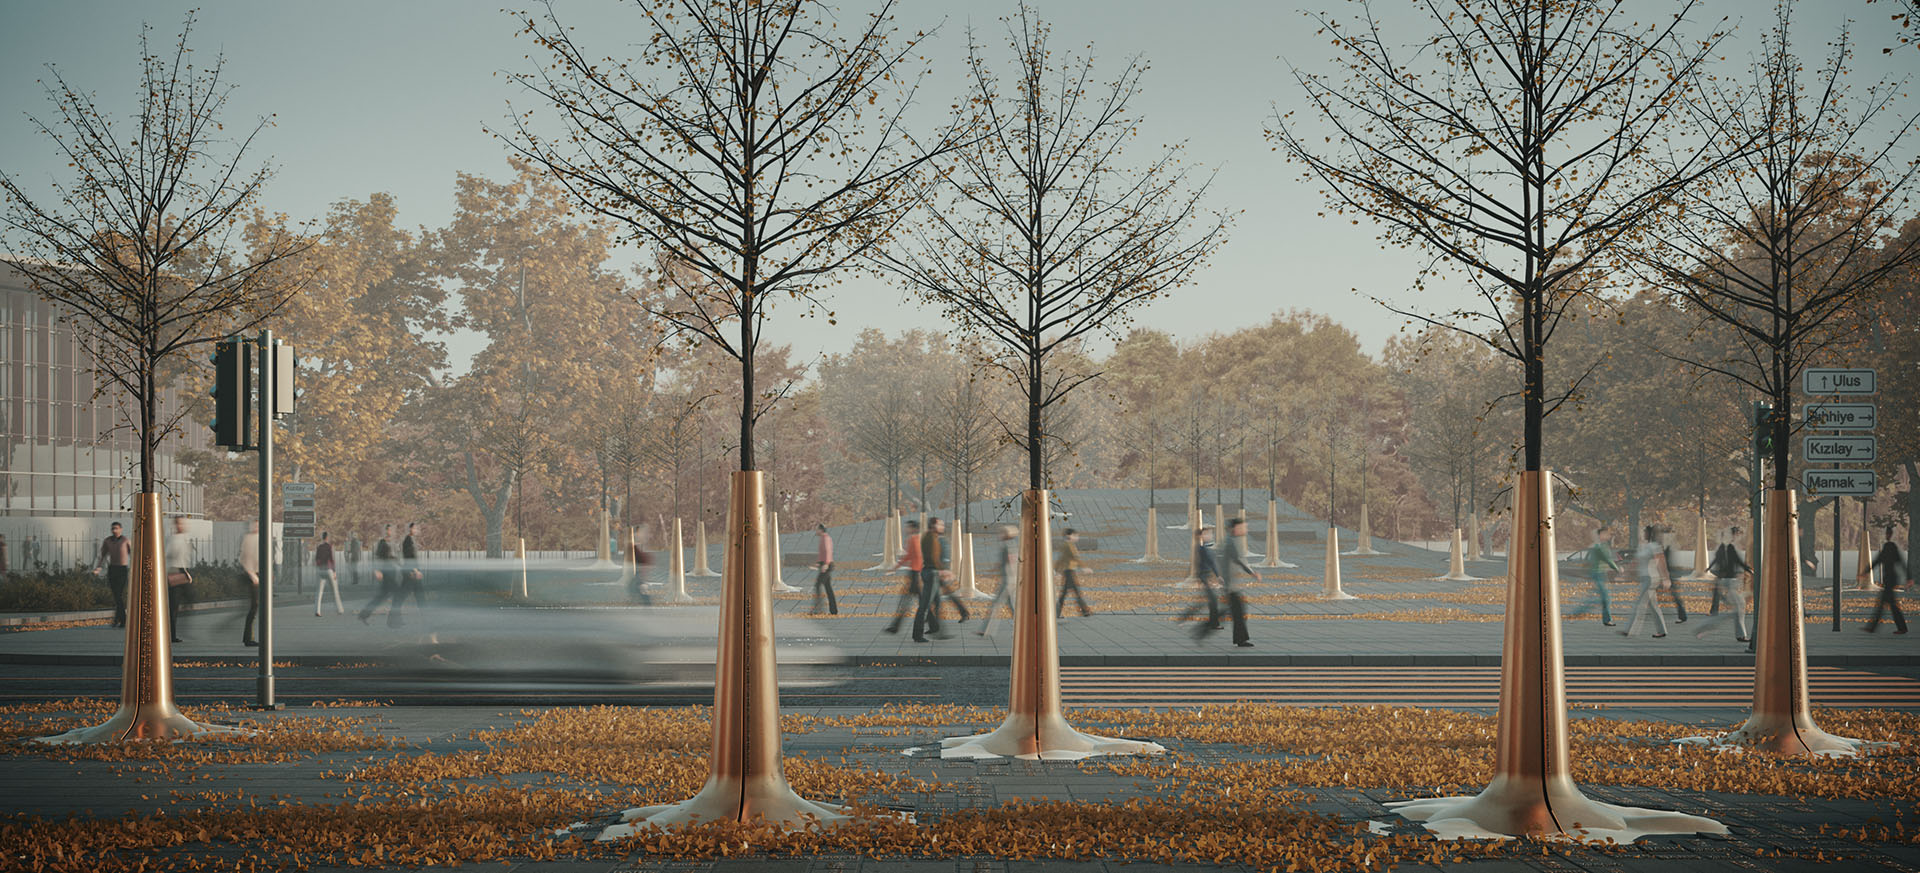 render_ivabox_CAPS_Ankara_Gar_Competition_4